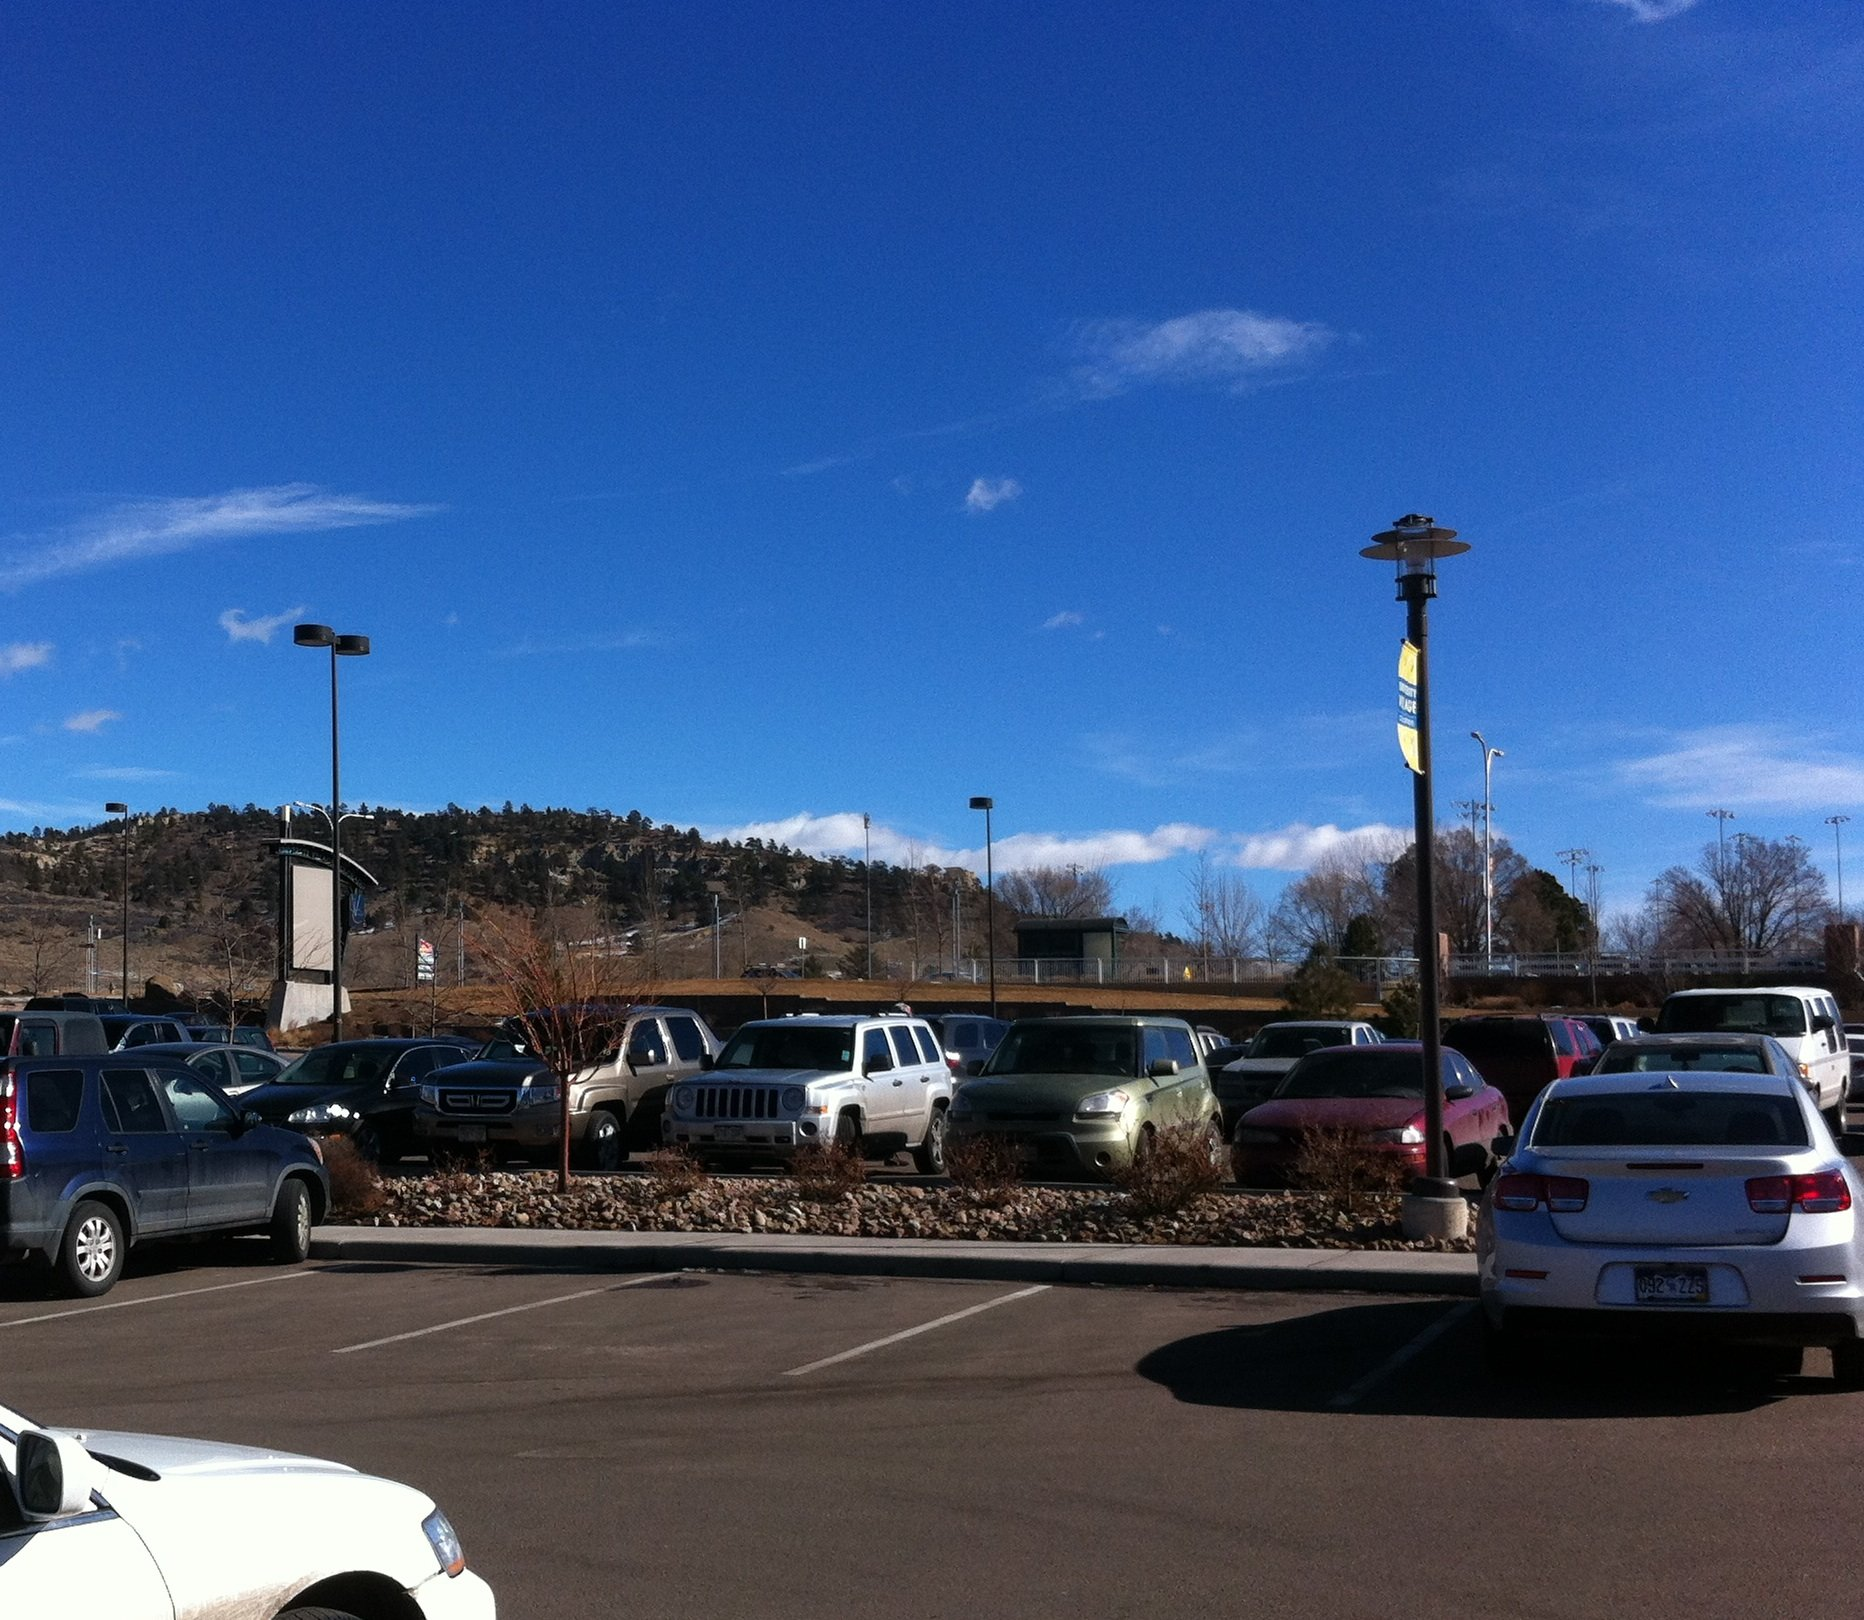 colorado Springs -University village Shopping Center